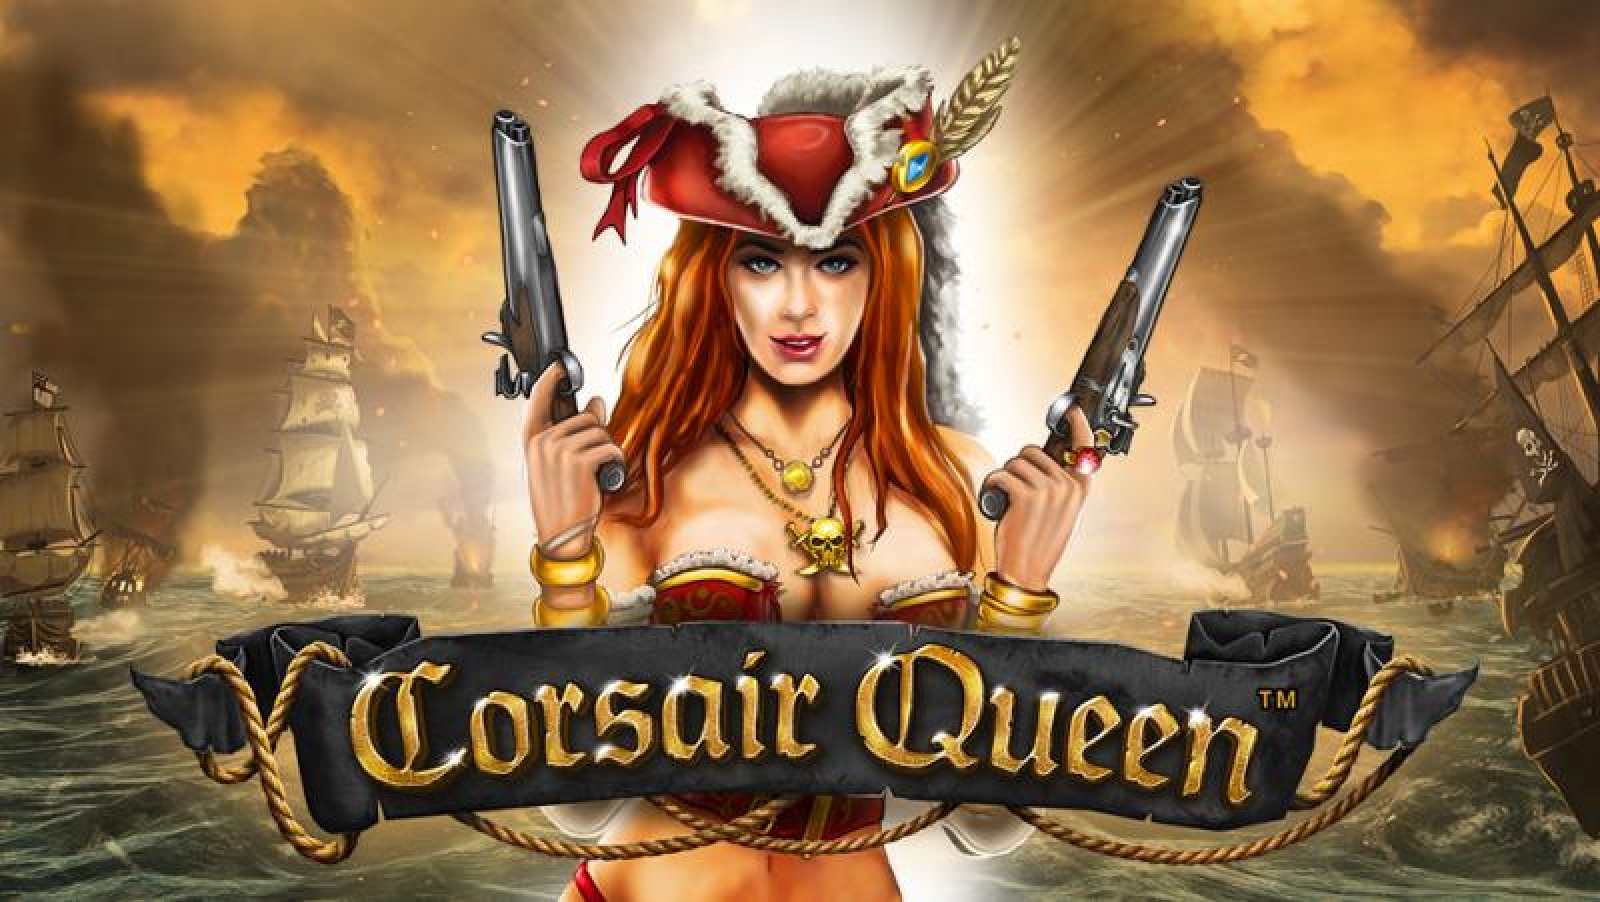 The Corsair Queen Online Slot Demo Game by Synot Games